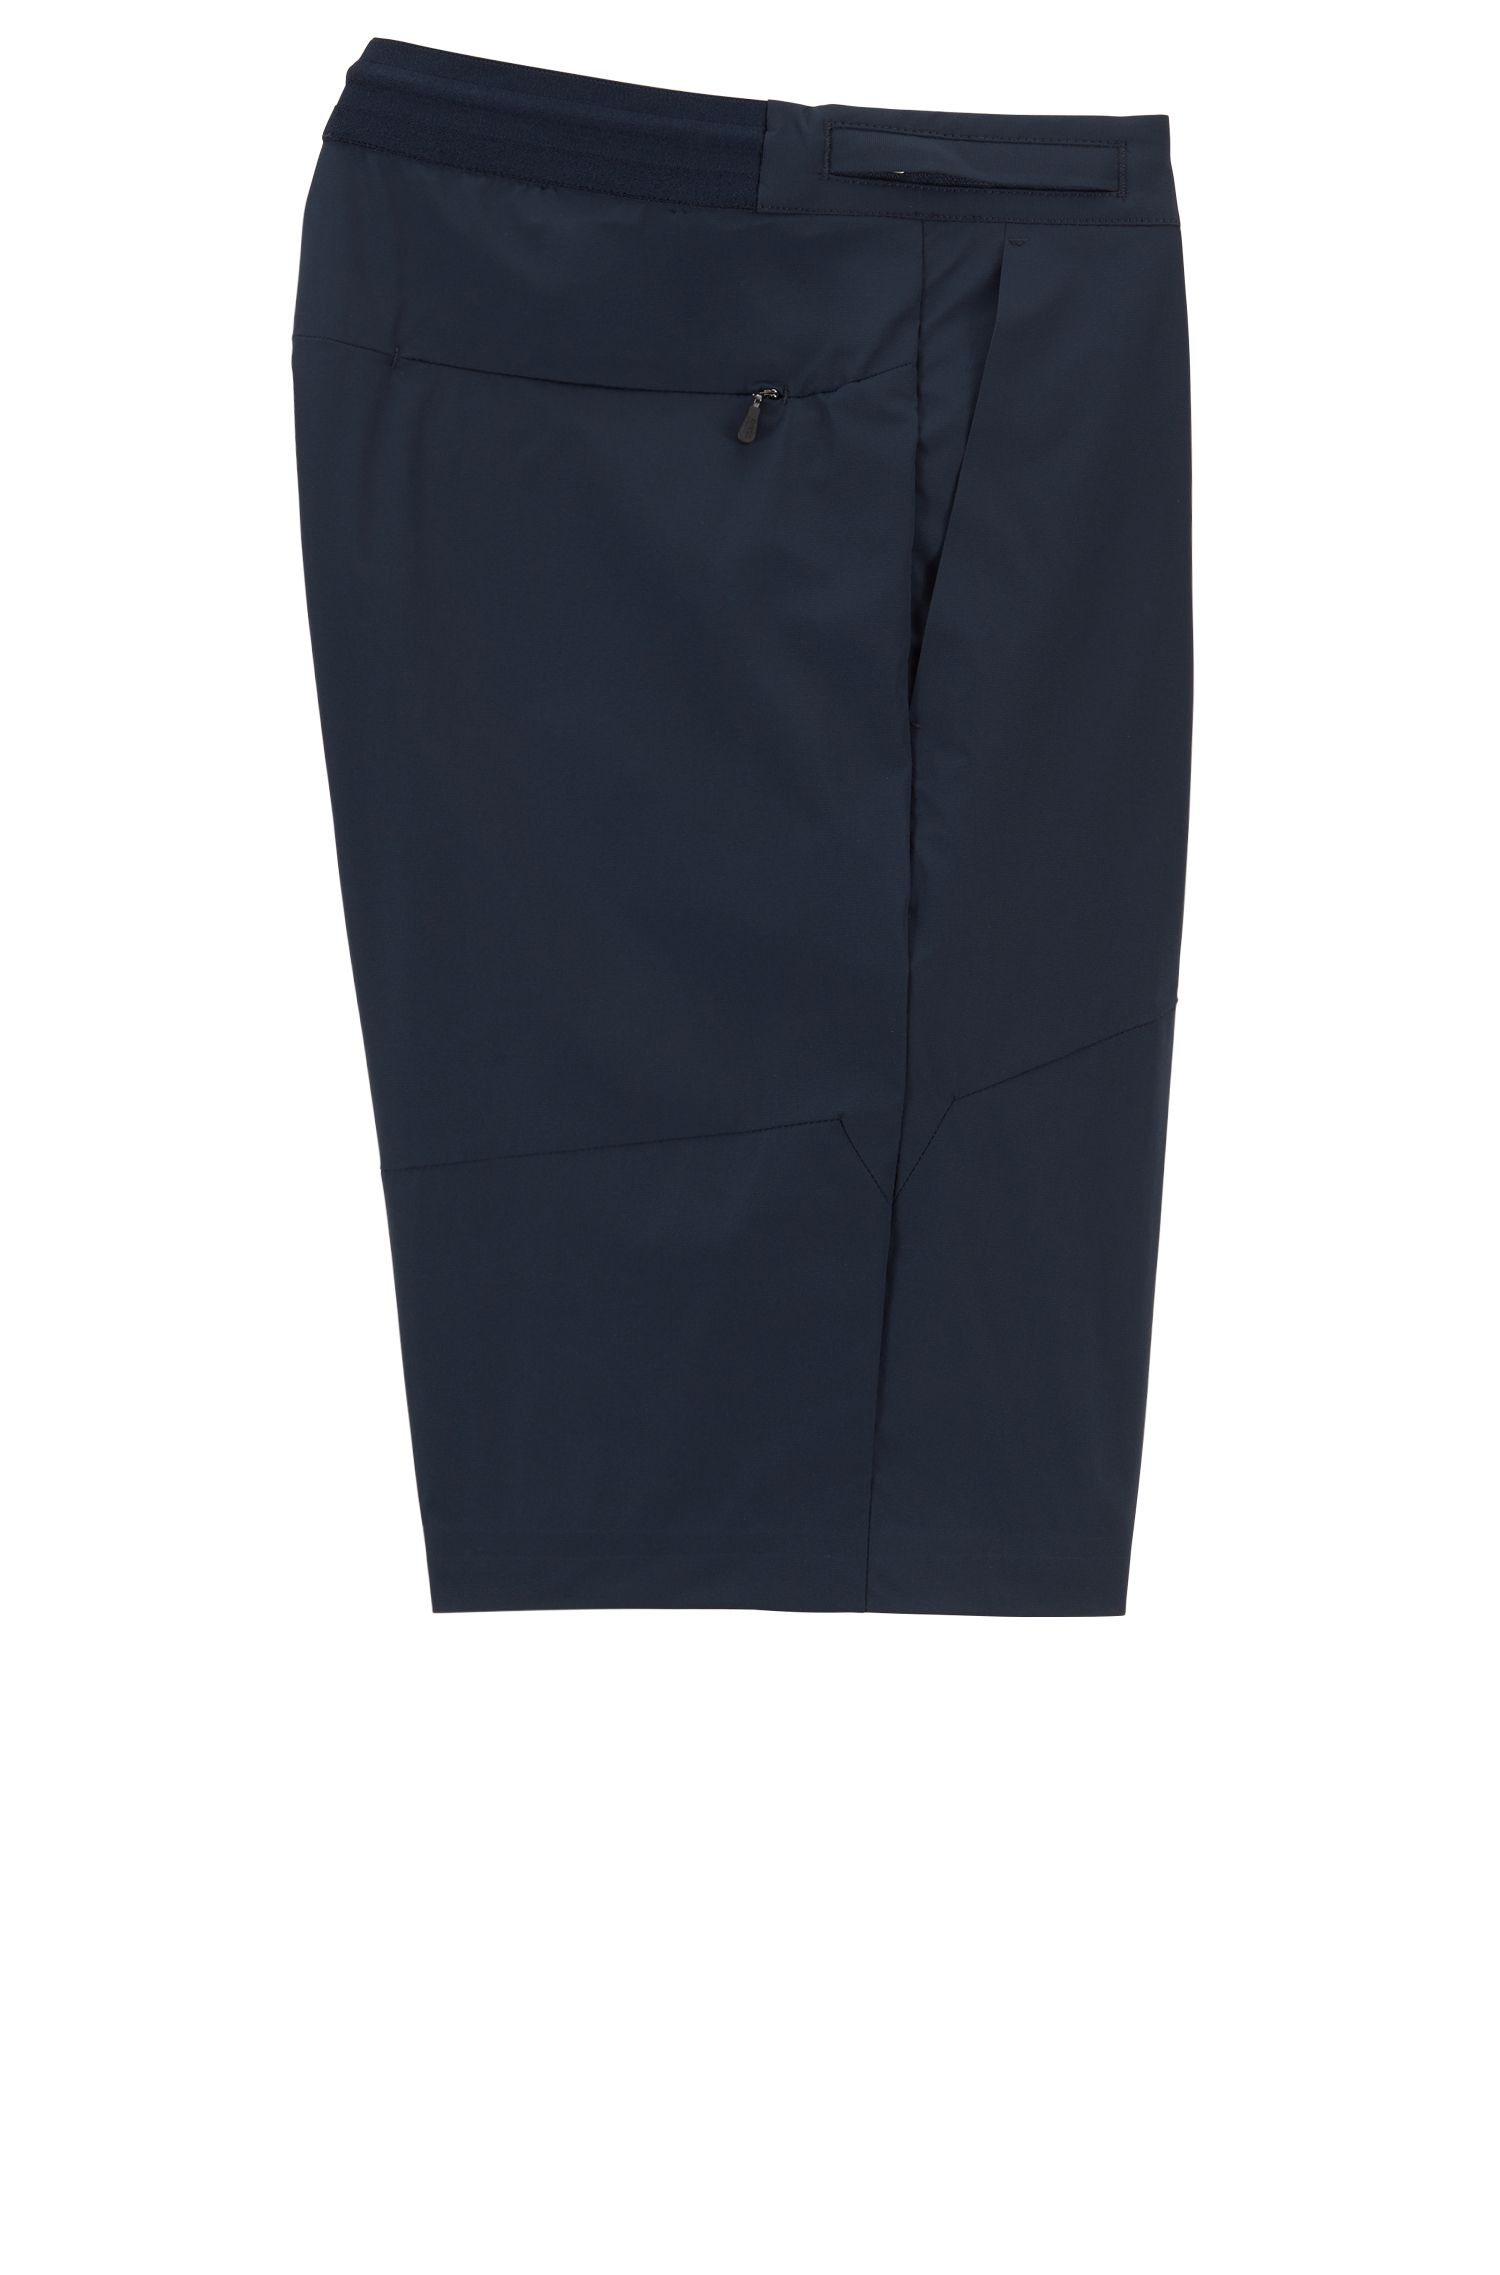 Multifunctionele slim-fit short van stretchmateriaal met microstructuur, Donkerblauw